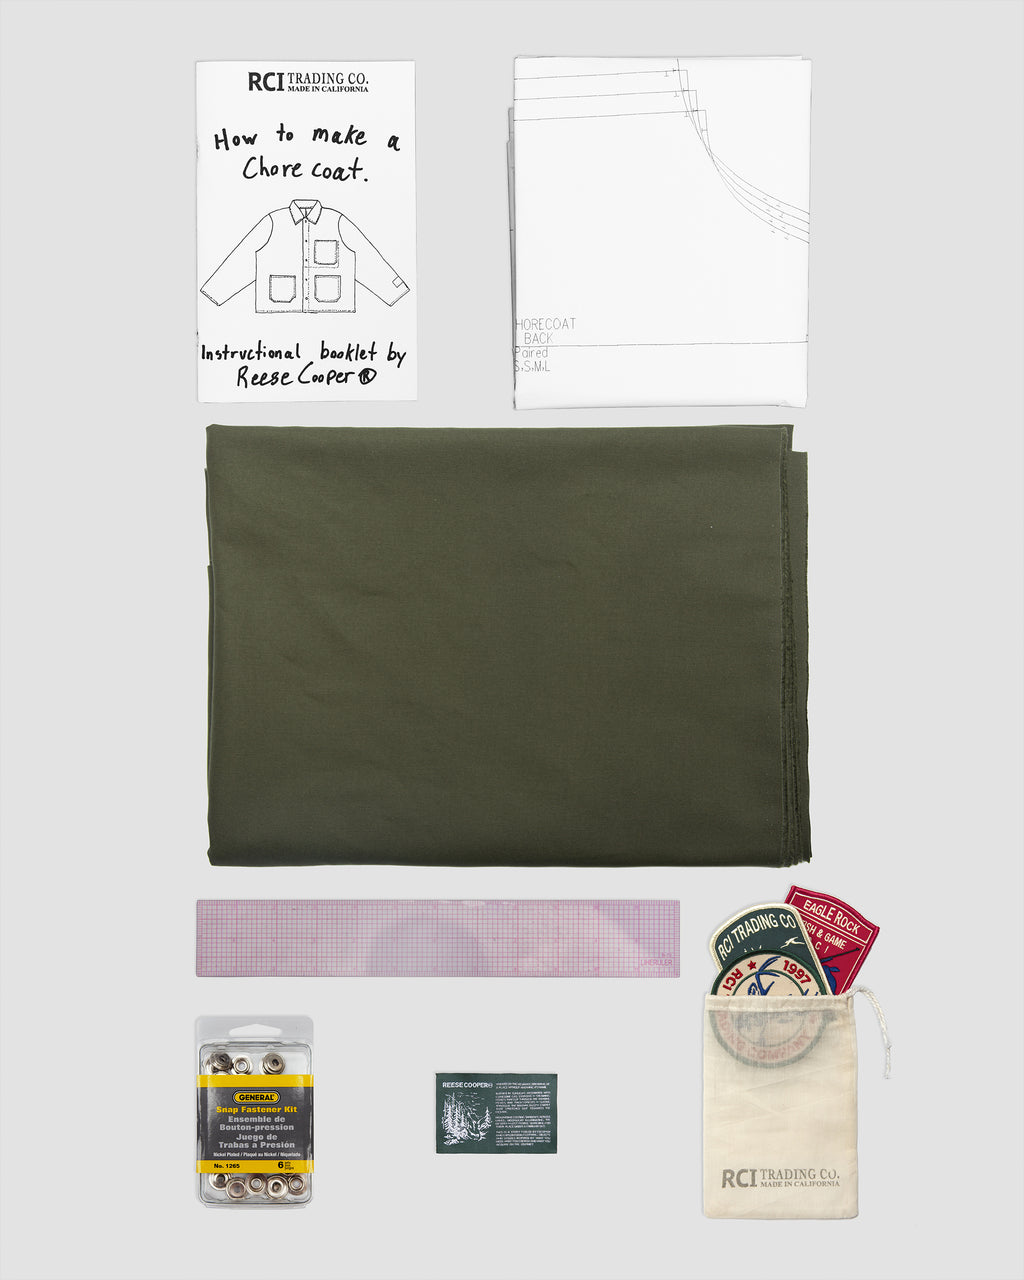 RCI Chore Coat Kit with Green Brushed Cotton Twill